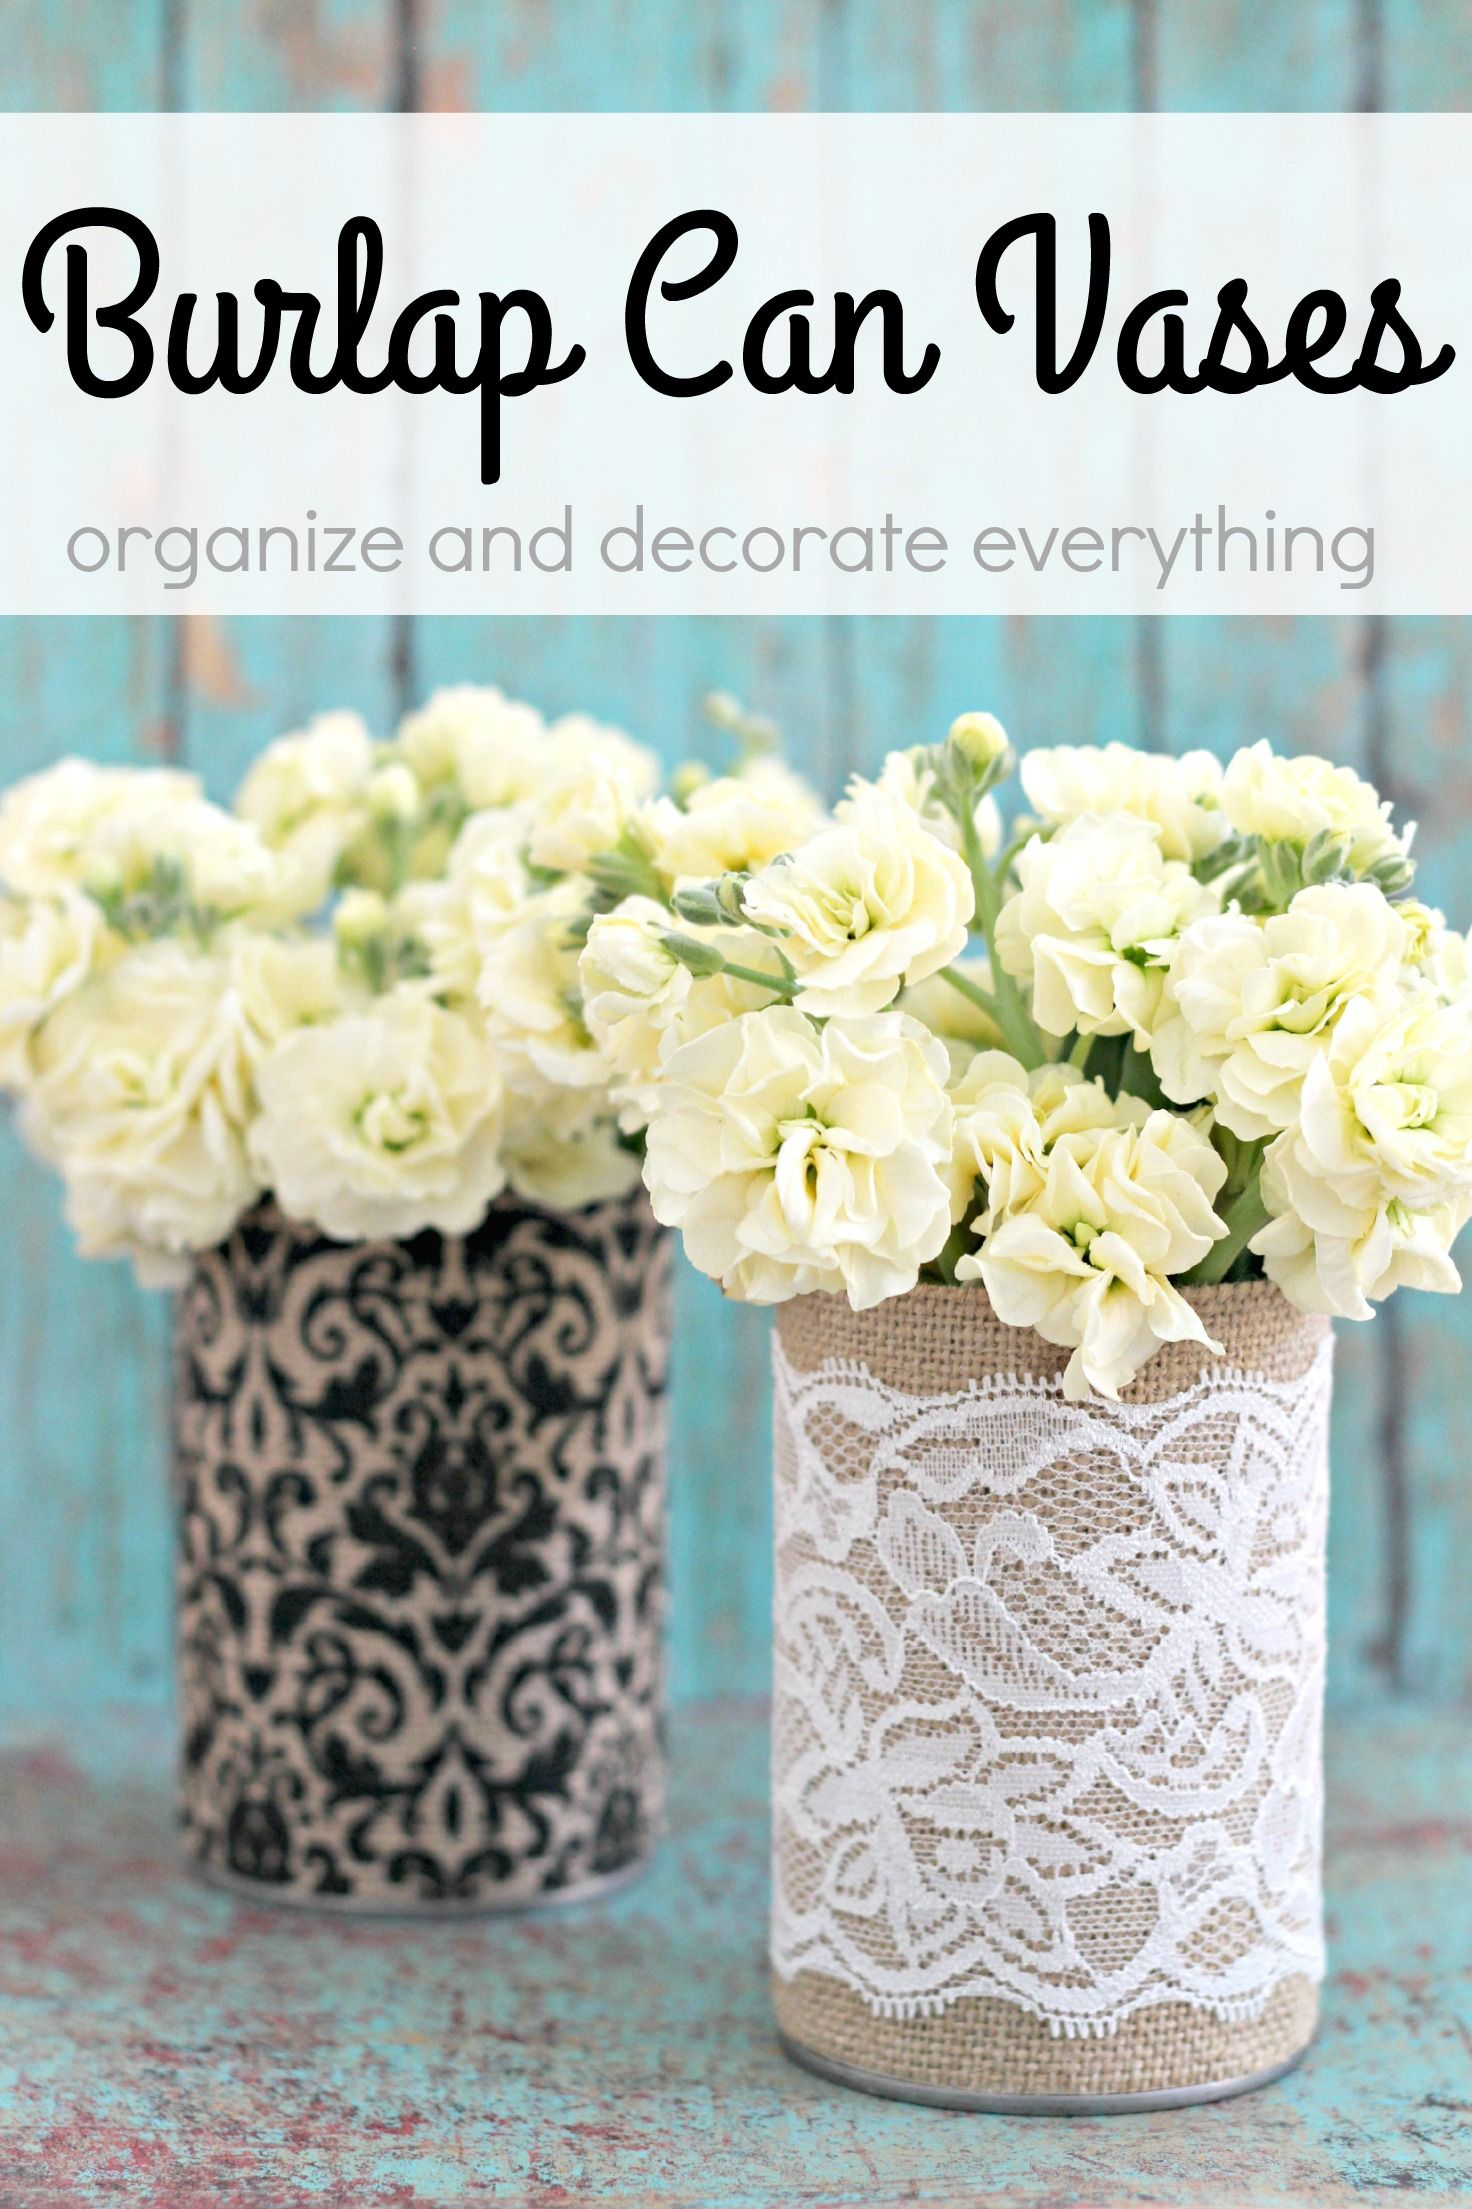 Burlap Can Vases Craft Ideas Pinterest Burlap Crafts And Diy